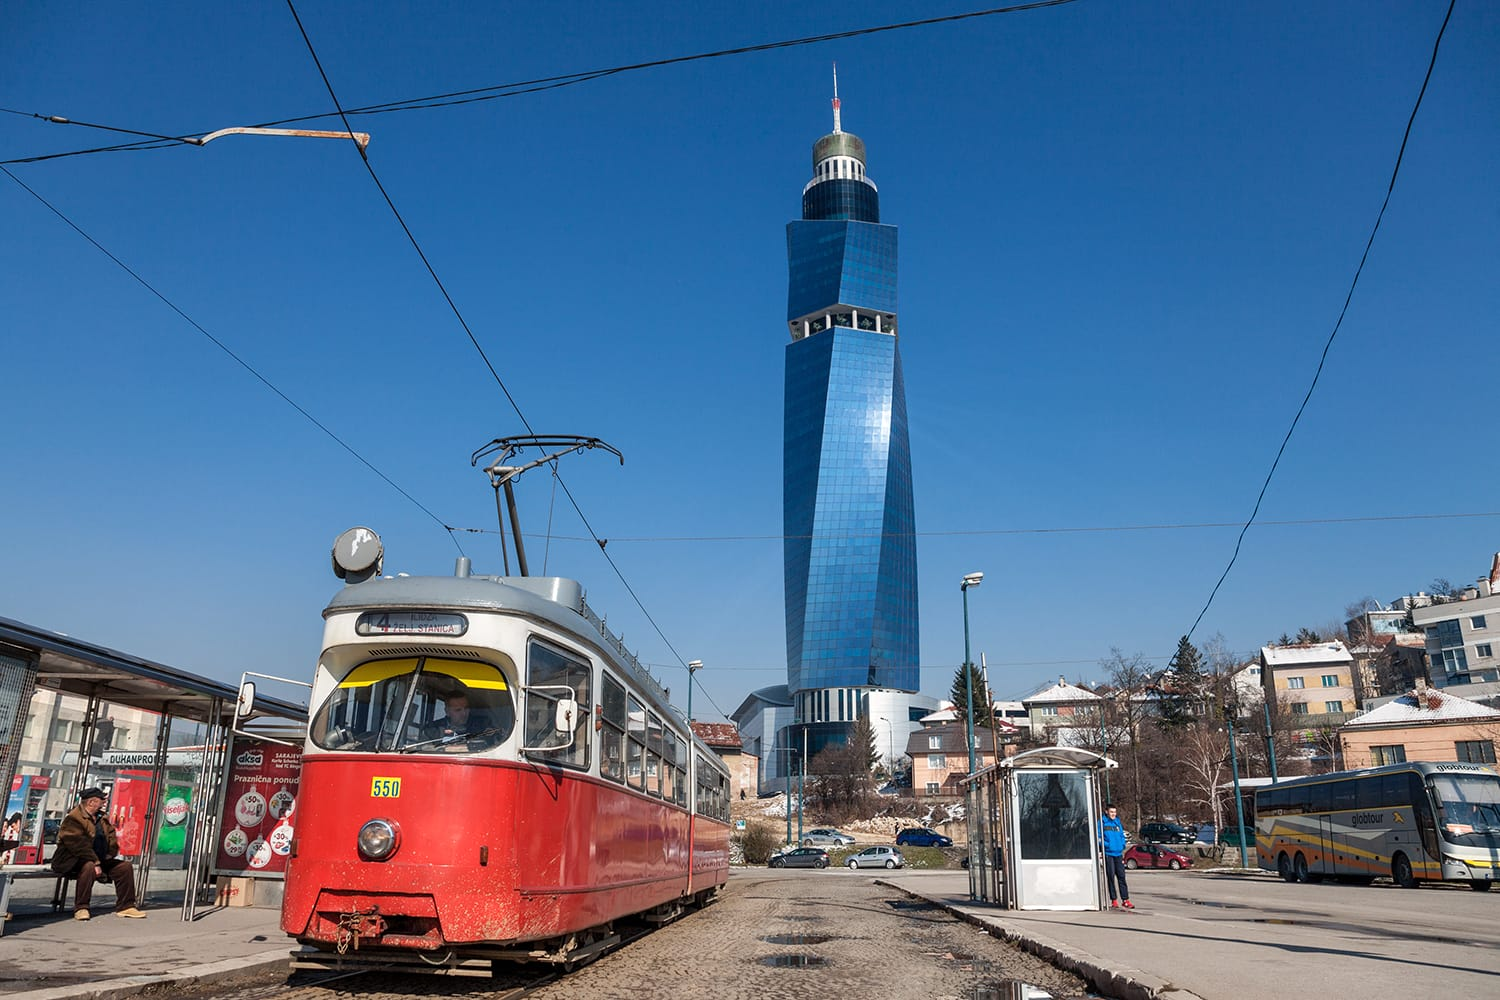 Tram ready for departure on the train station stop, the Avaz Twist Tower is seen in the background. Sarajevo, Bosnia & Herzegovina